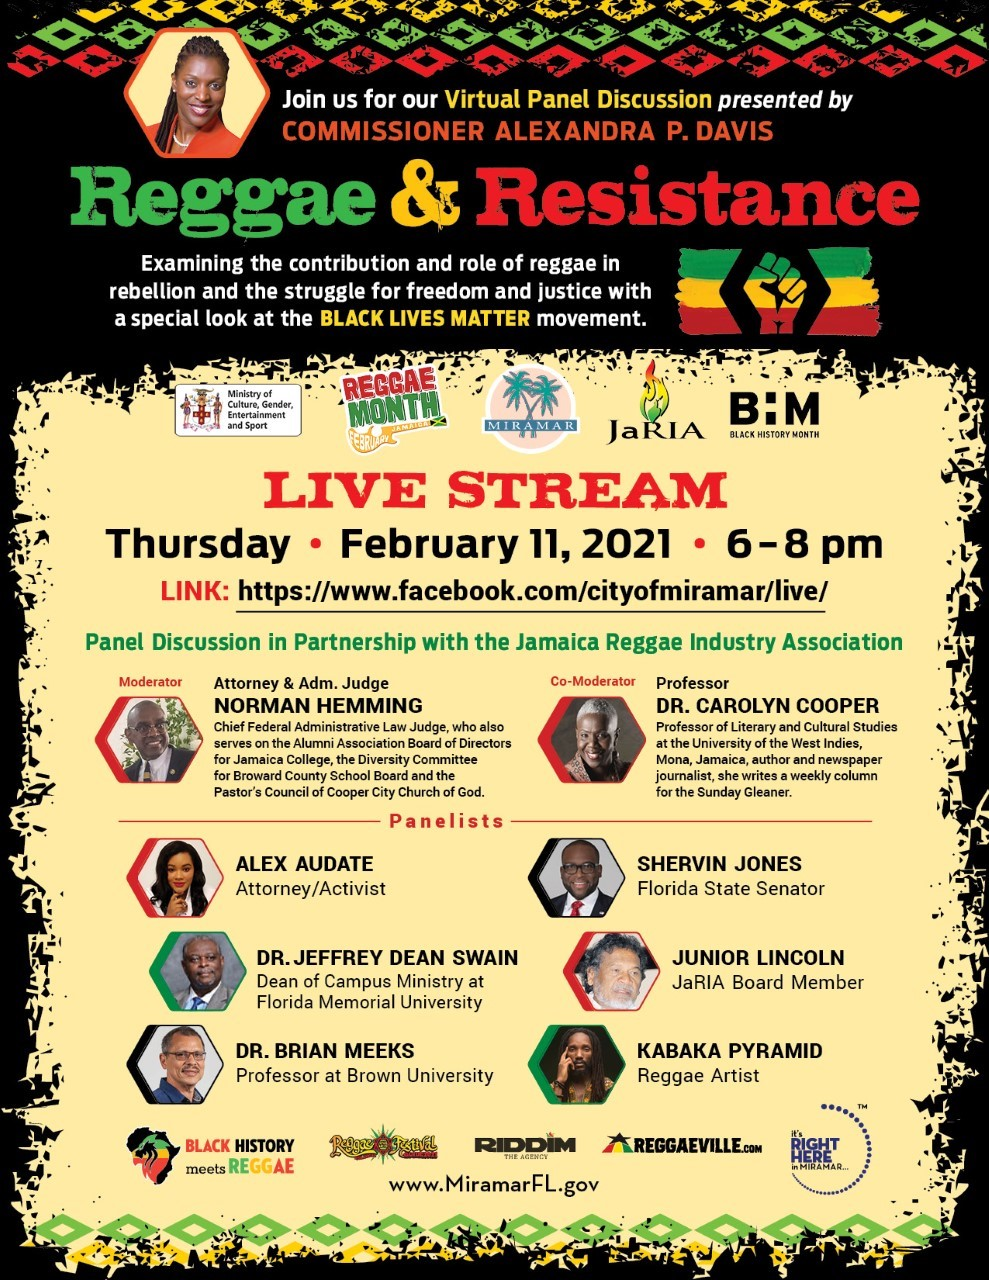 Commissioner Davis Reggae and Resistance FNL